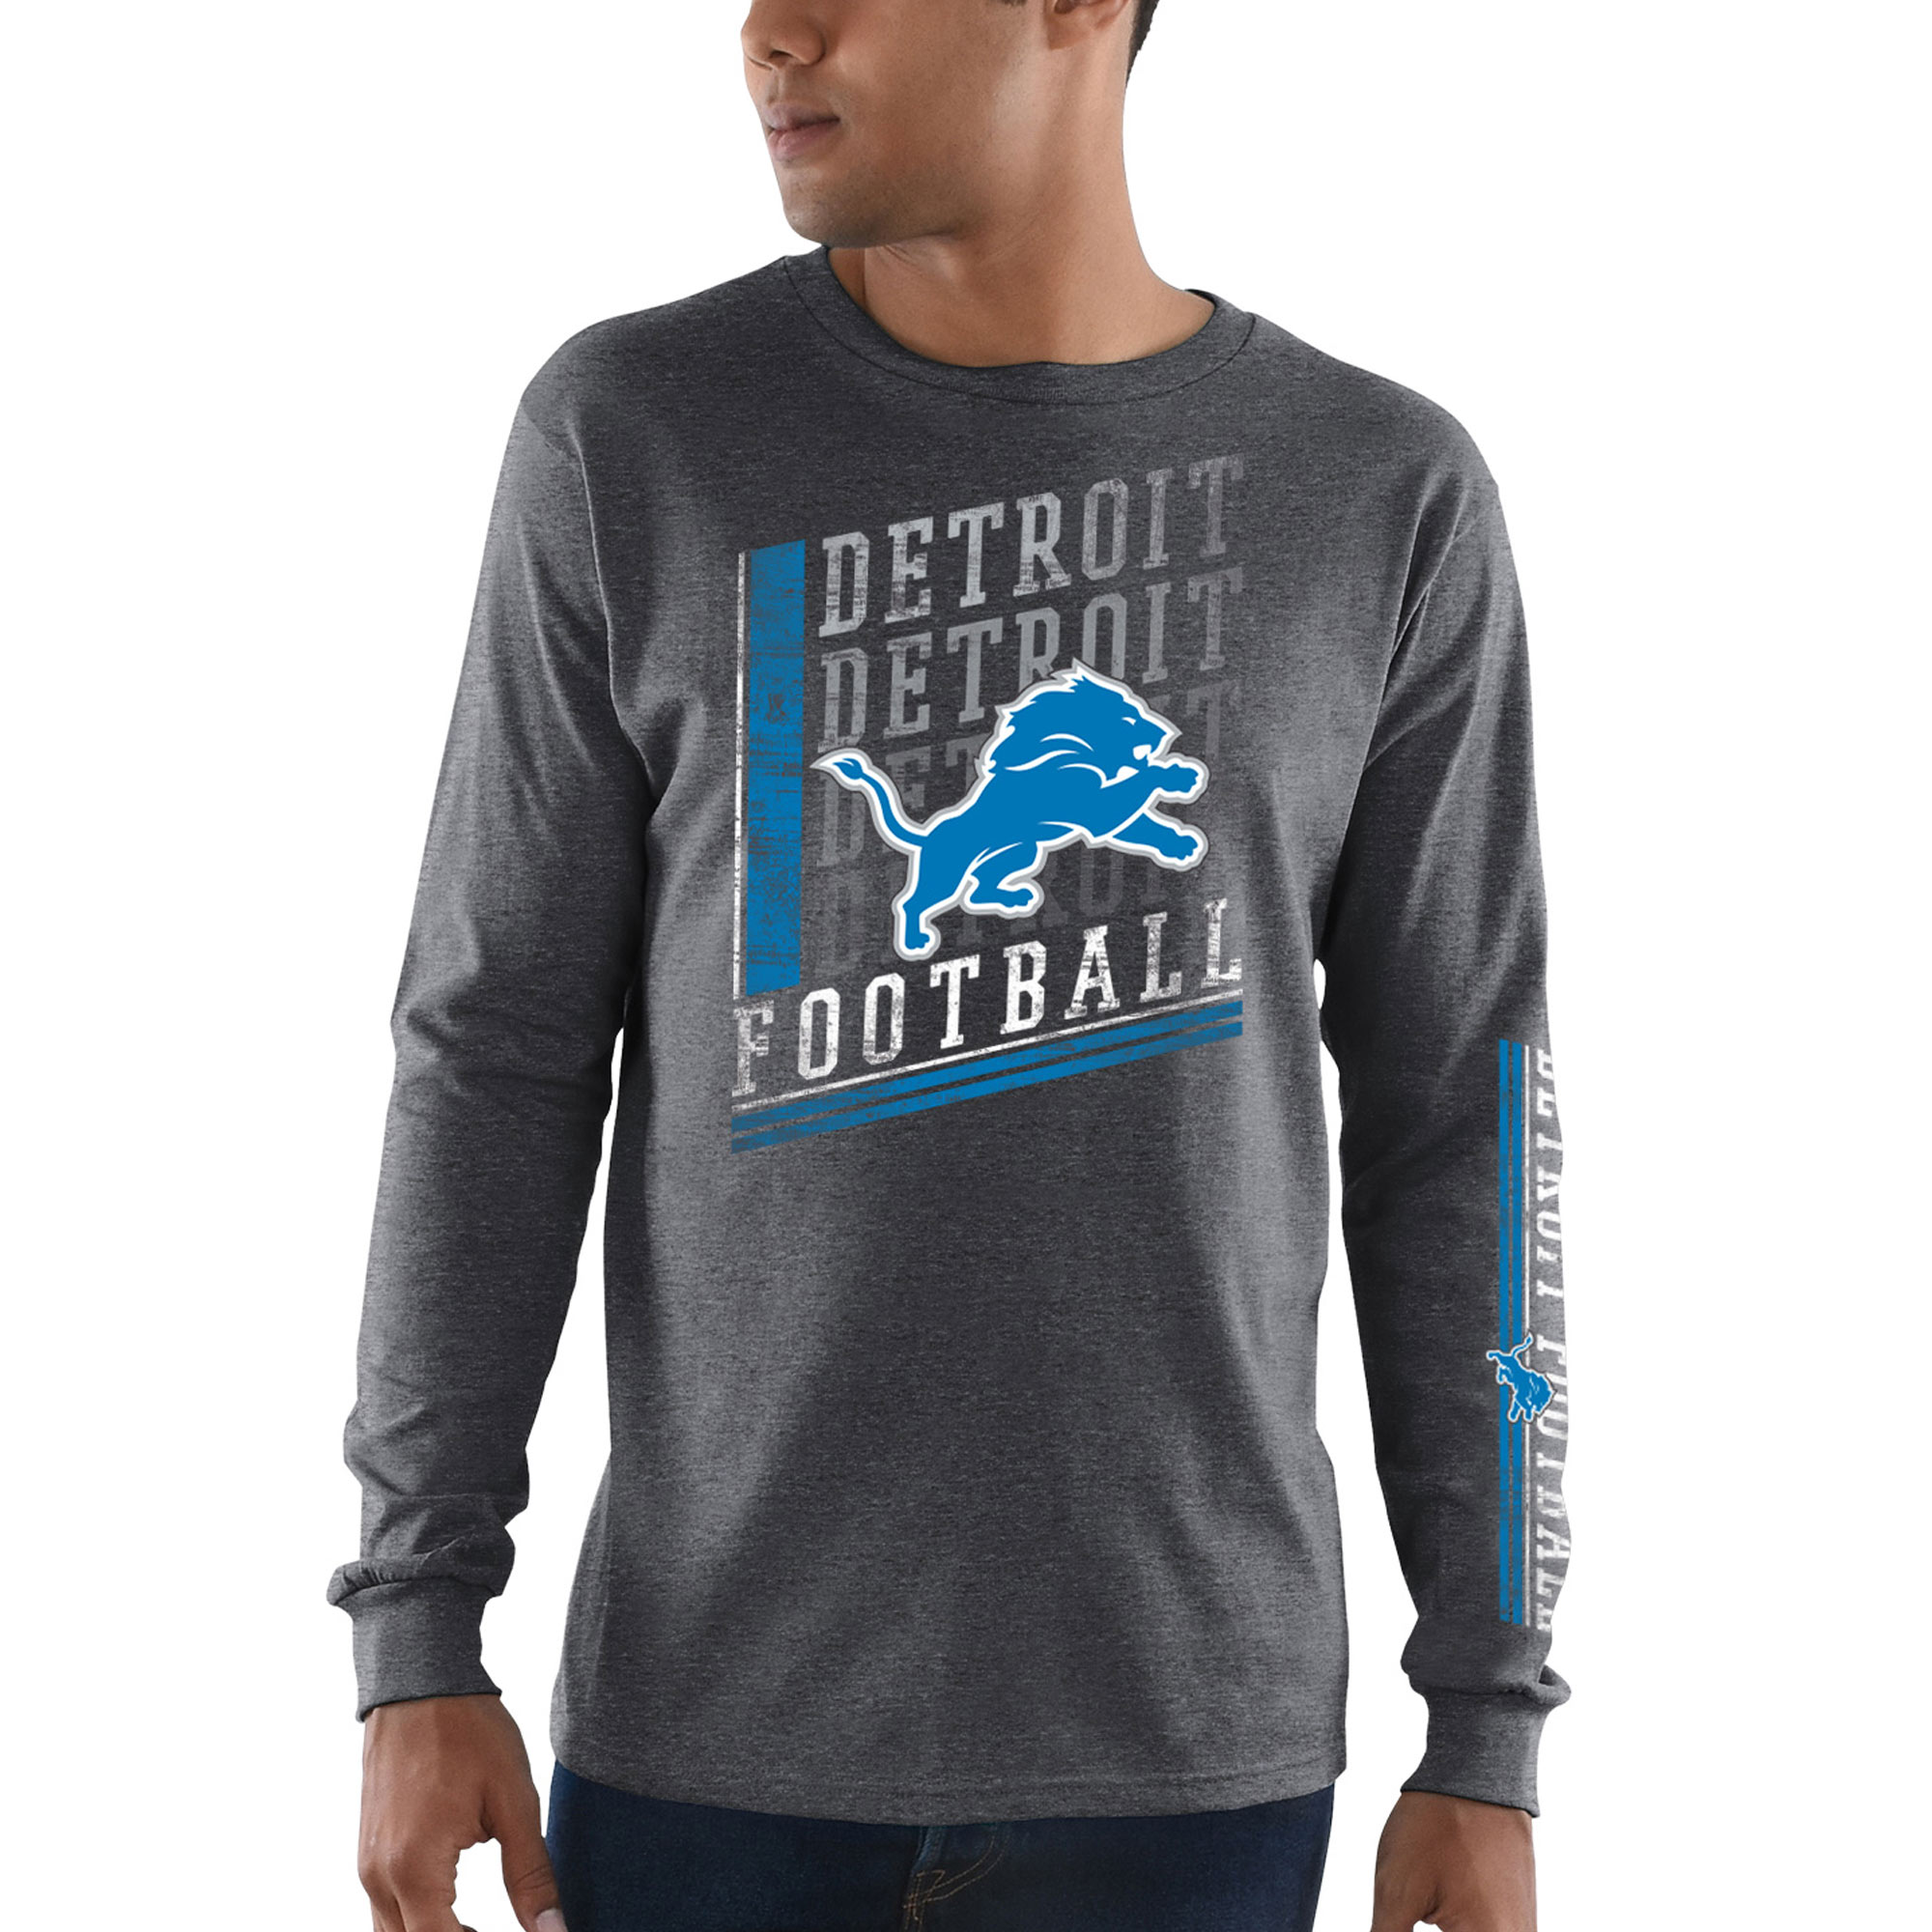 Detroit Lions Majestic Dual Threat Long Sleeve T-Shirt - Heathered Charcoal